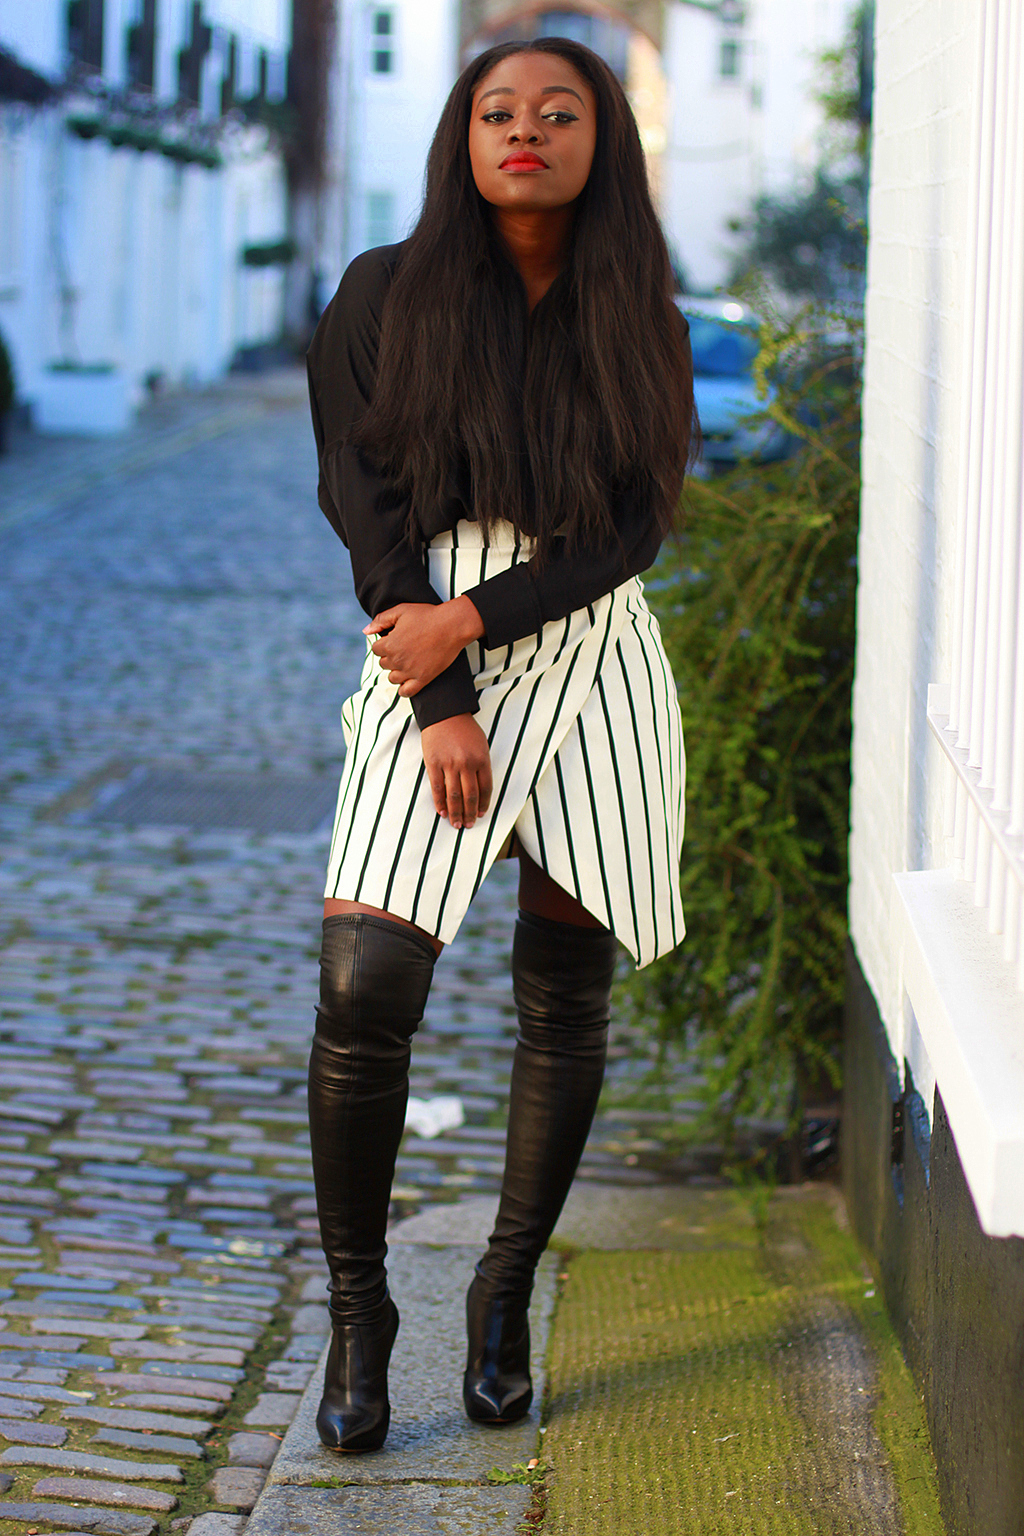 slit skirt and thigh high boots